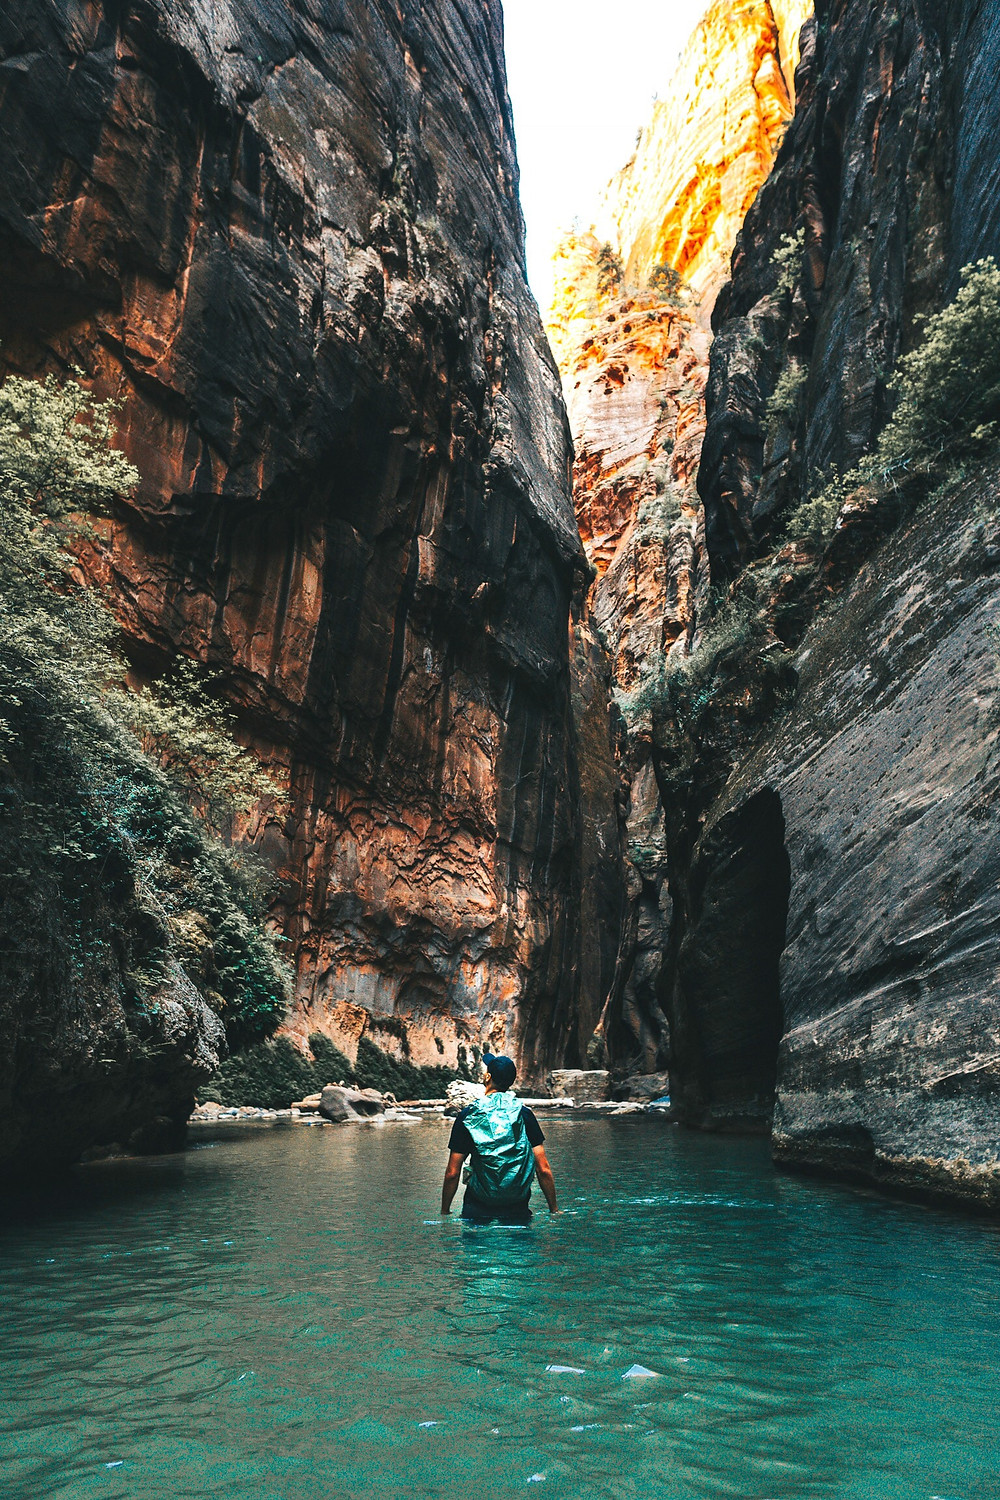 a man wading through water in Zion National Park